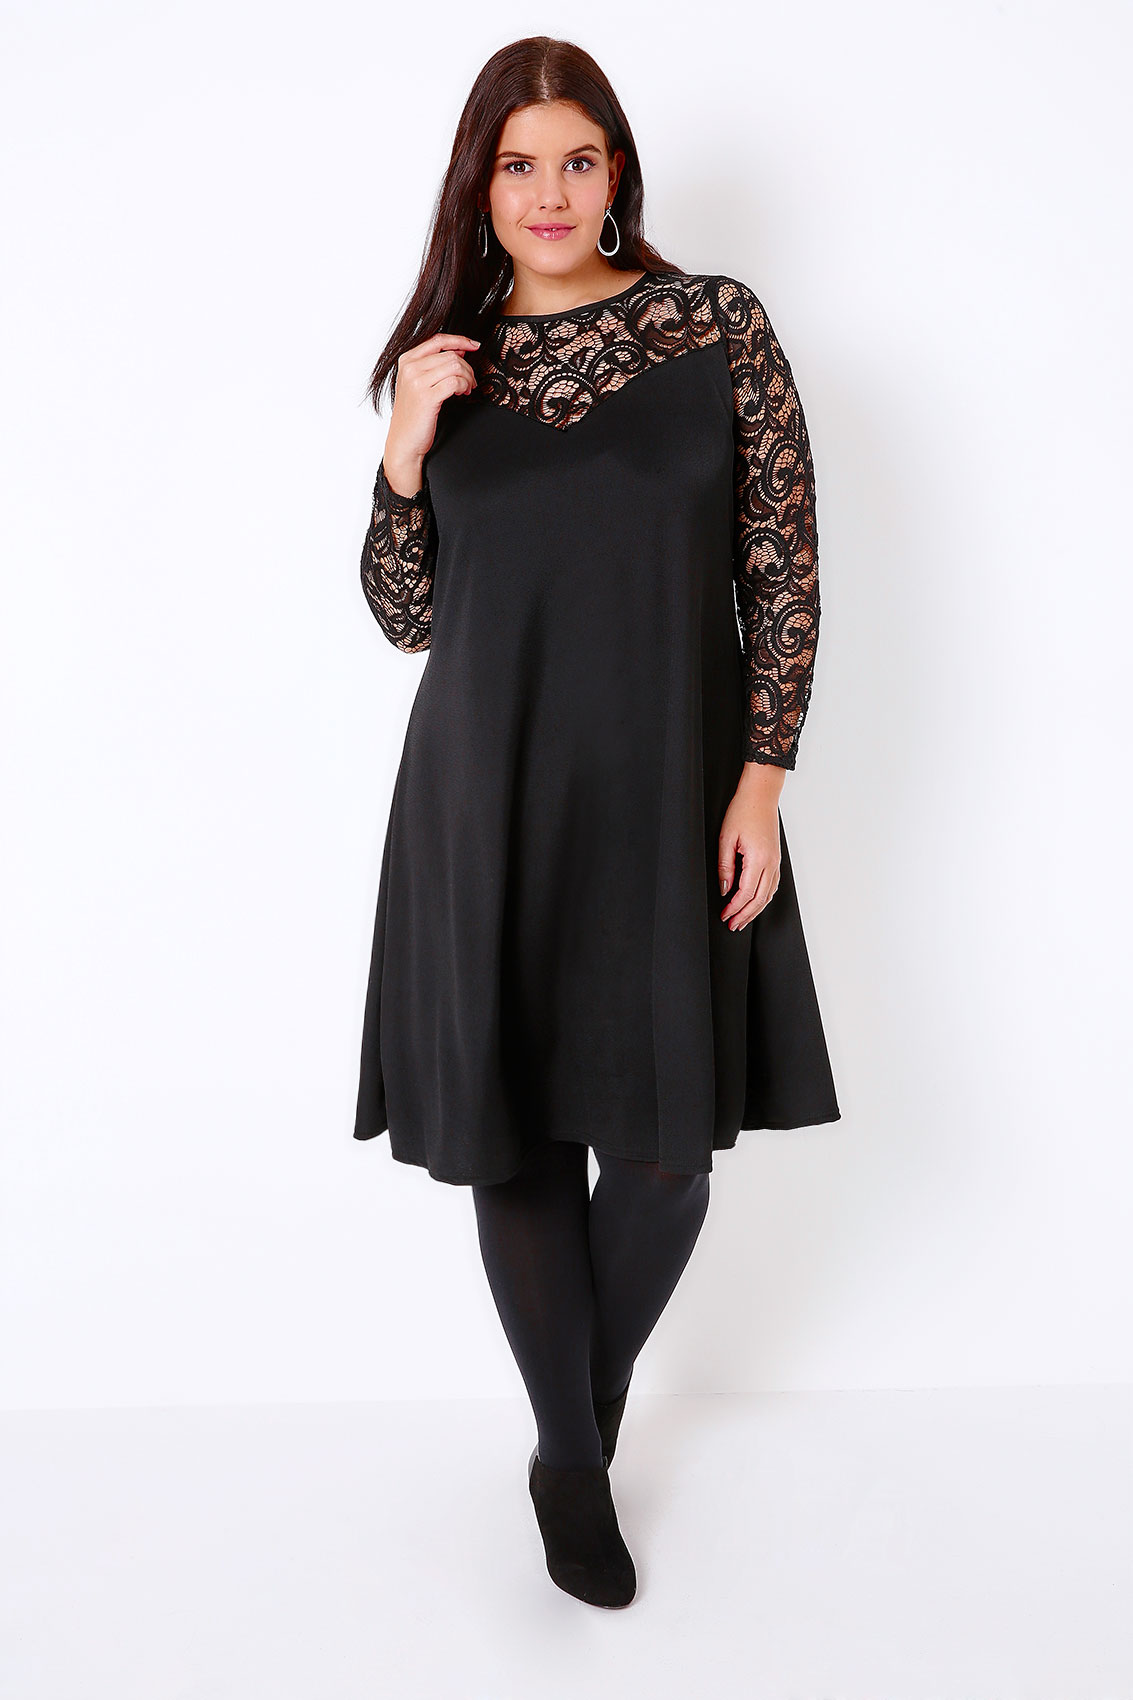 Find great deals on eBay for black lace swing dress. Shop with confidence.